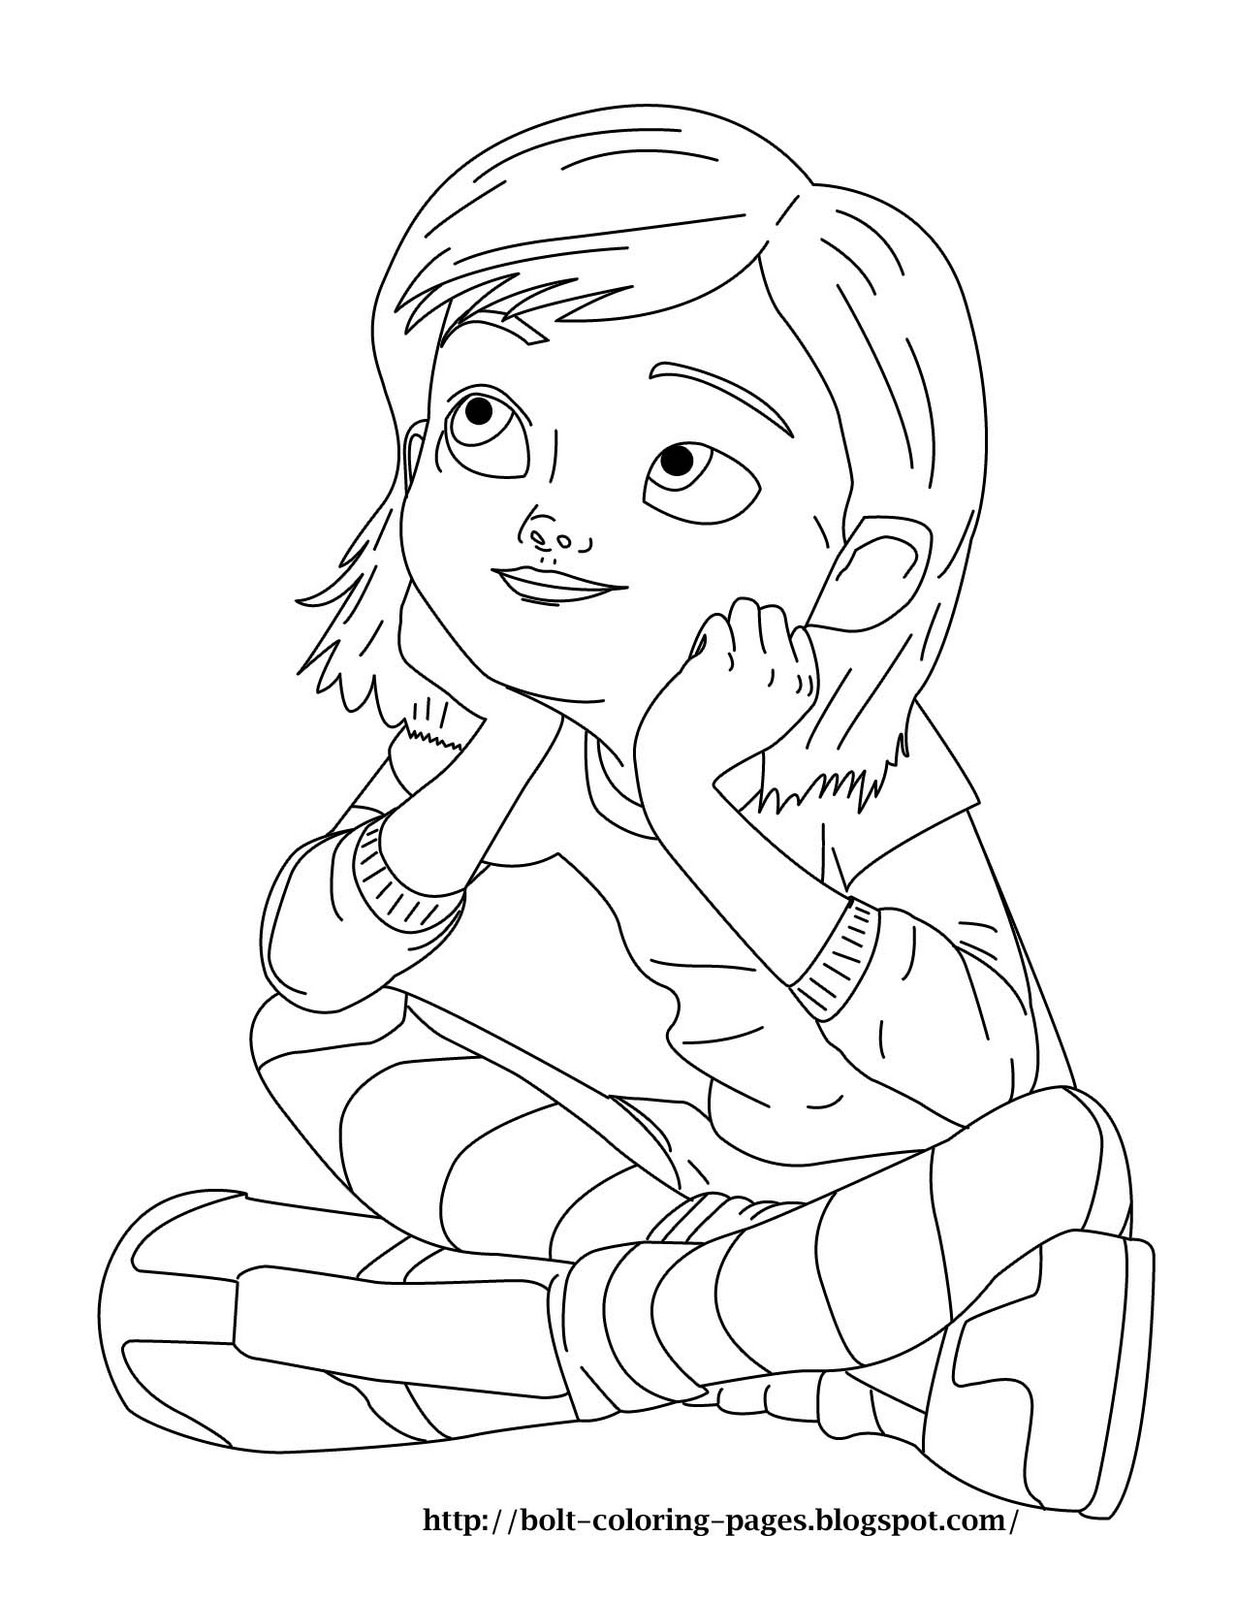 1236x1600 Bolt Coloring Pages As Menu Cute Animal Inside